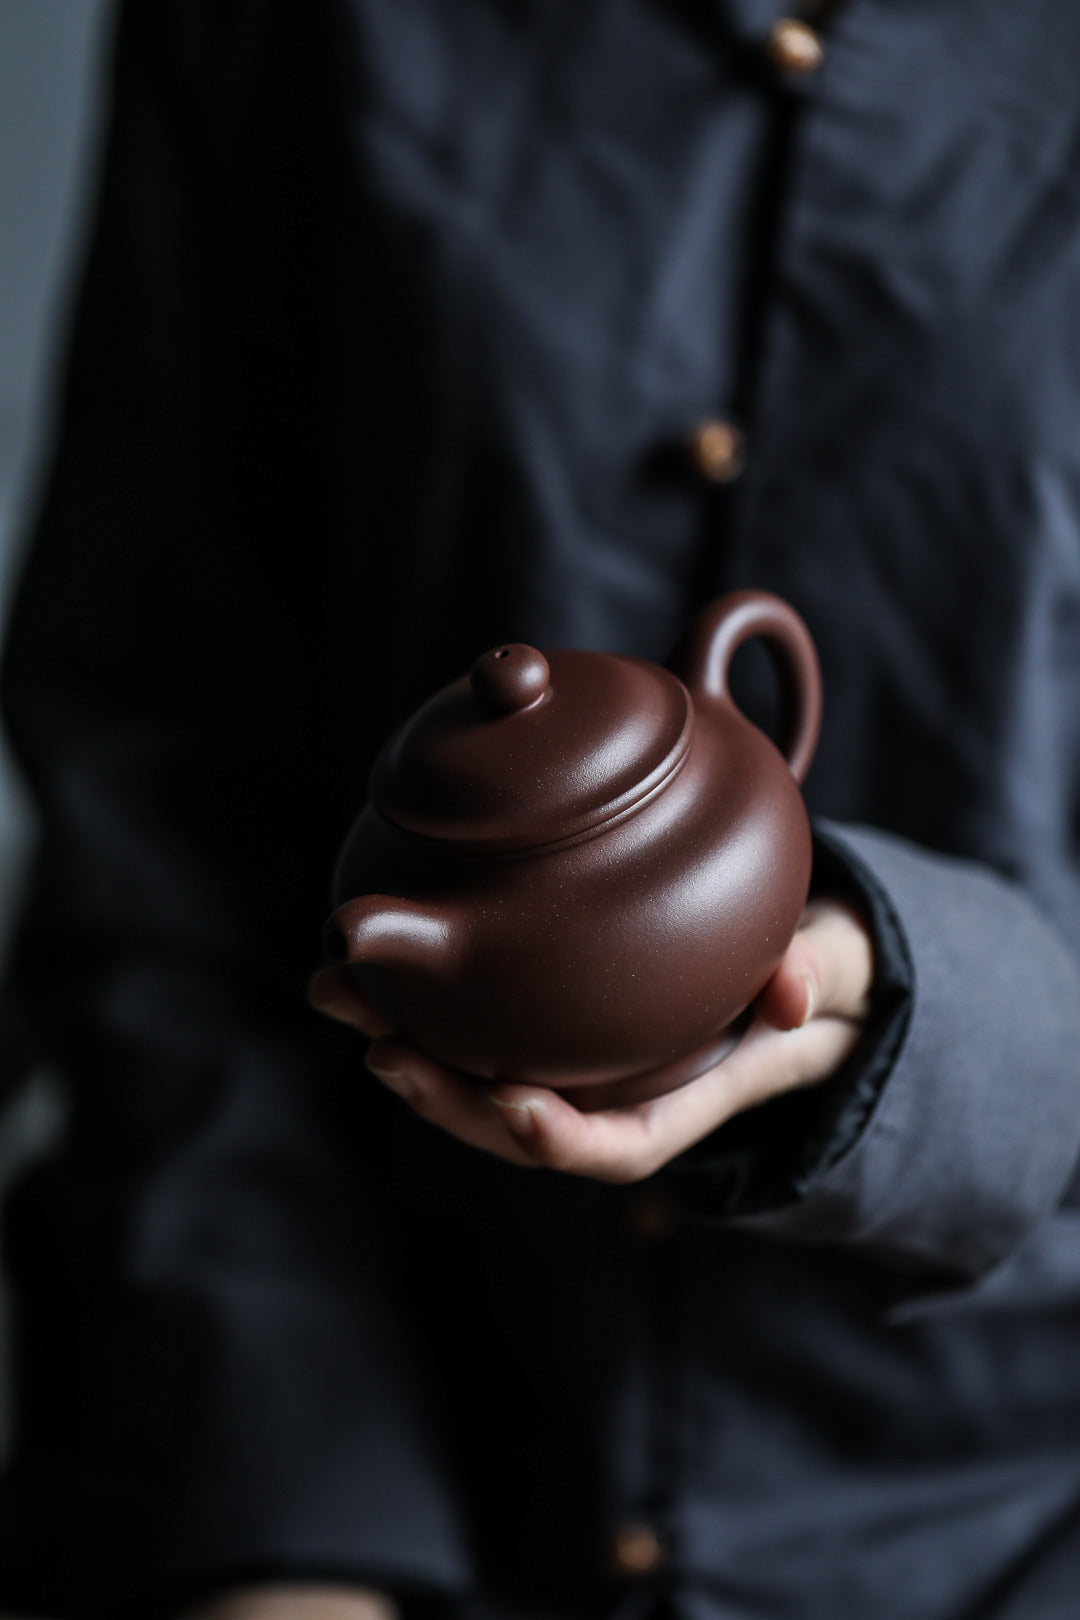 掇只 290ML Di Cao Qing Zini  底槽清 沈美华 Shen Mei Hua - The Phans Yixing Zisha Teapot